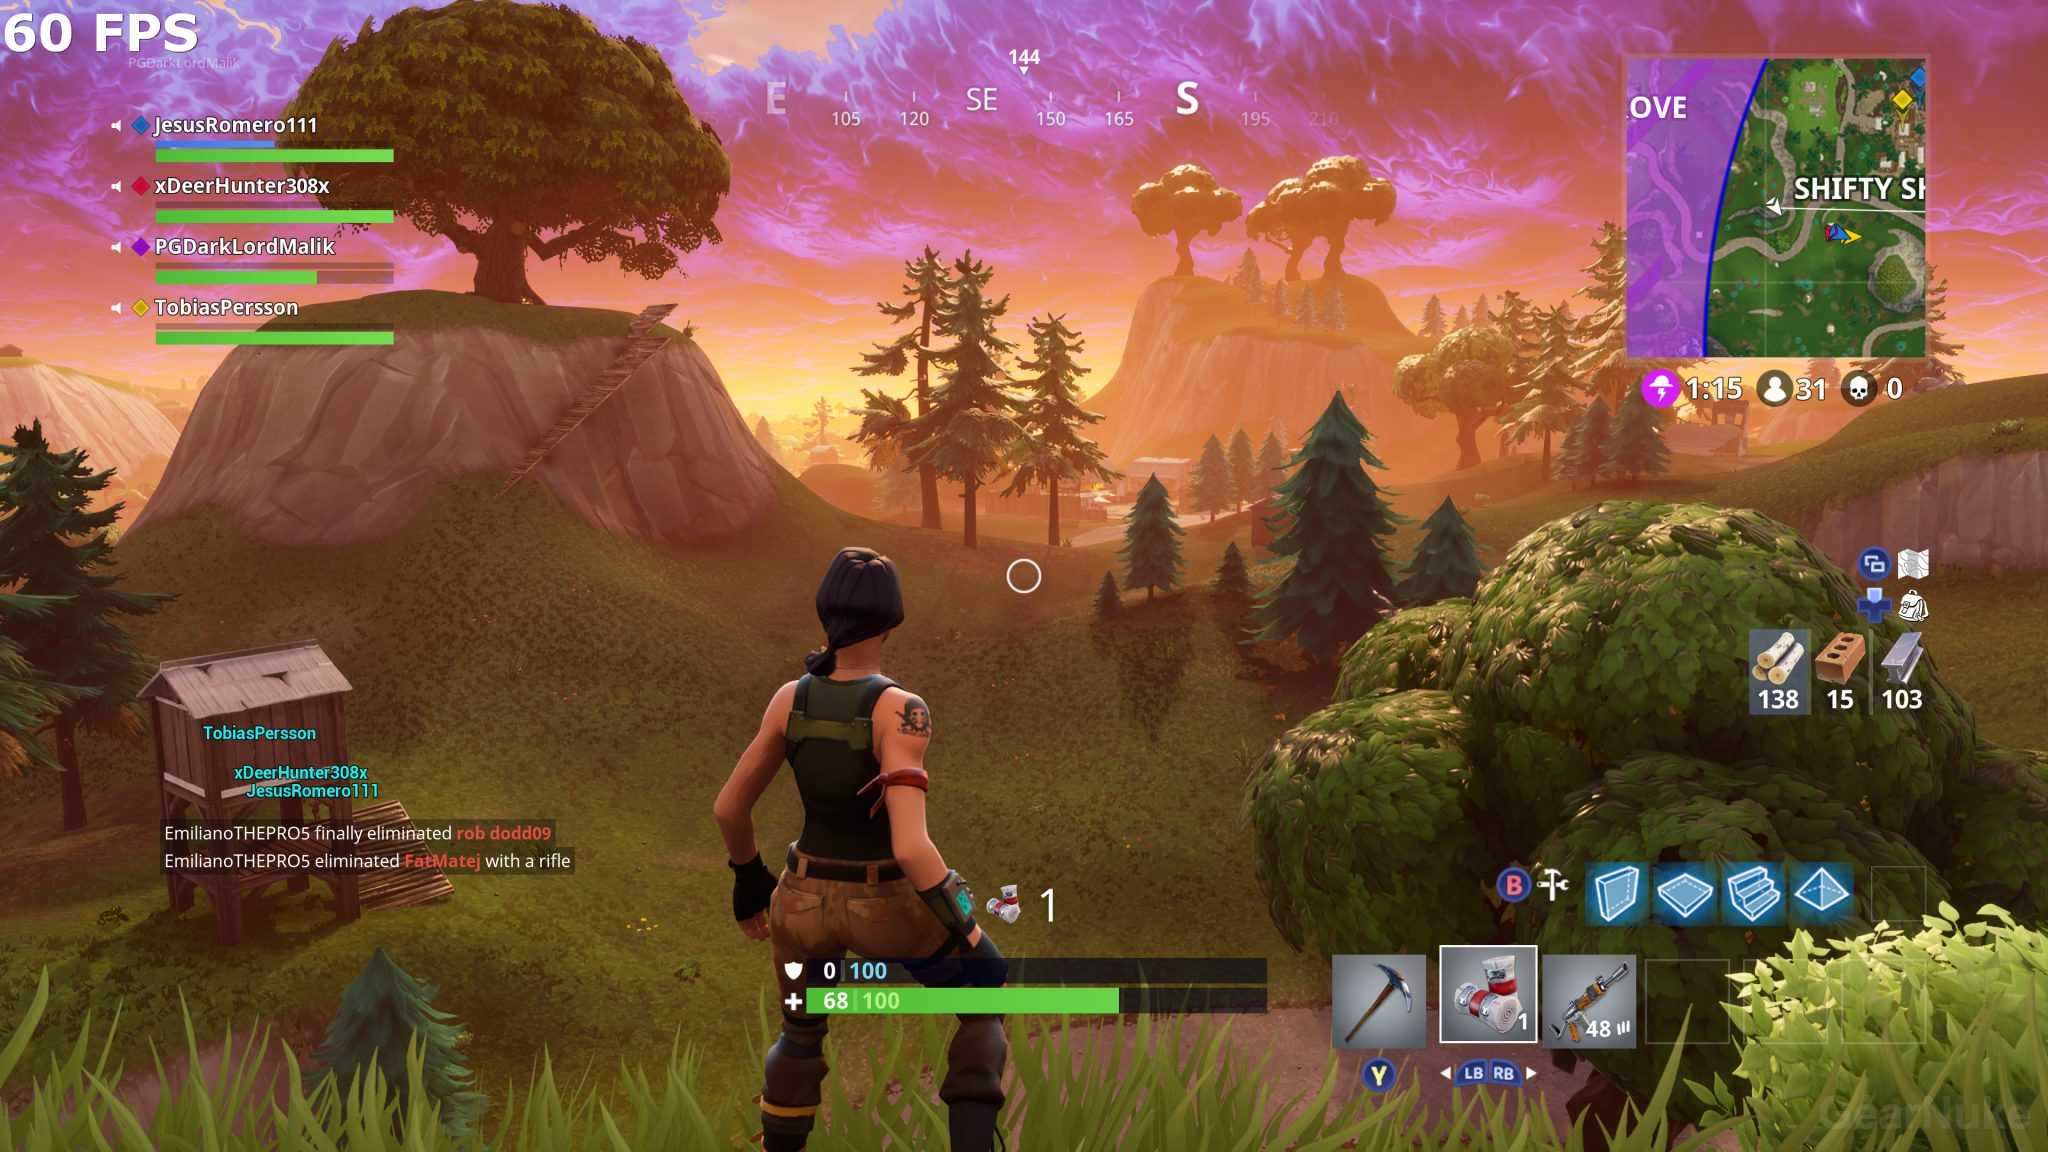 How To Make A Dynamic Wallpaper For Iphone X Fortnite Is Stunning At 4k 60 Fps On Xbox One X Visual